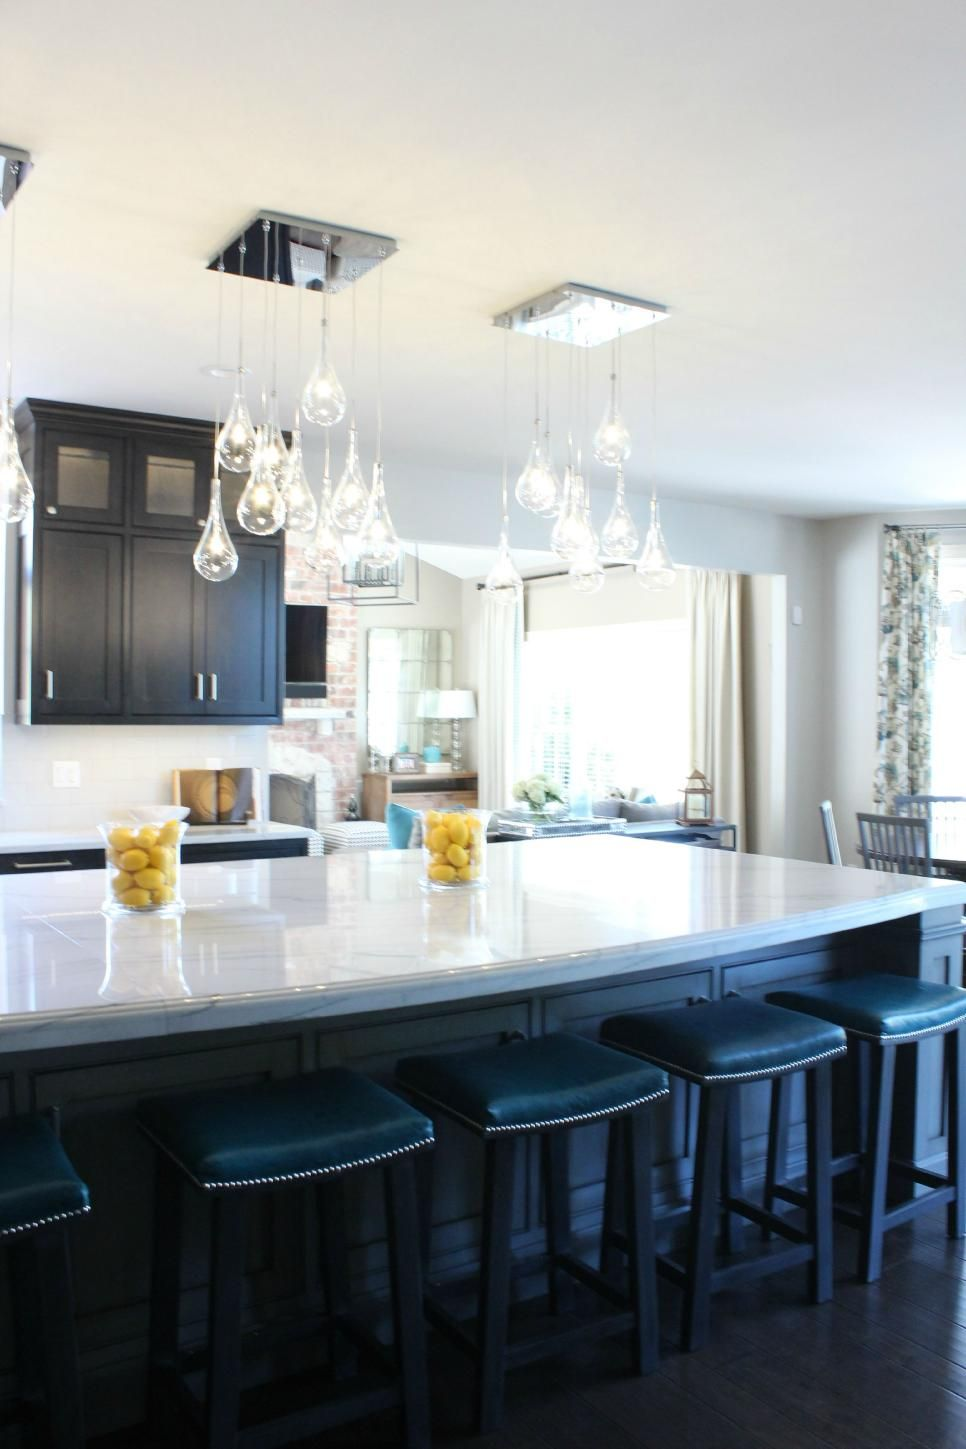 Clusters Of Glass Pendant Lights Dangle Over This Large